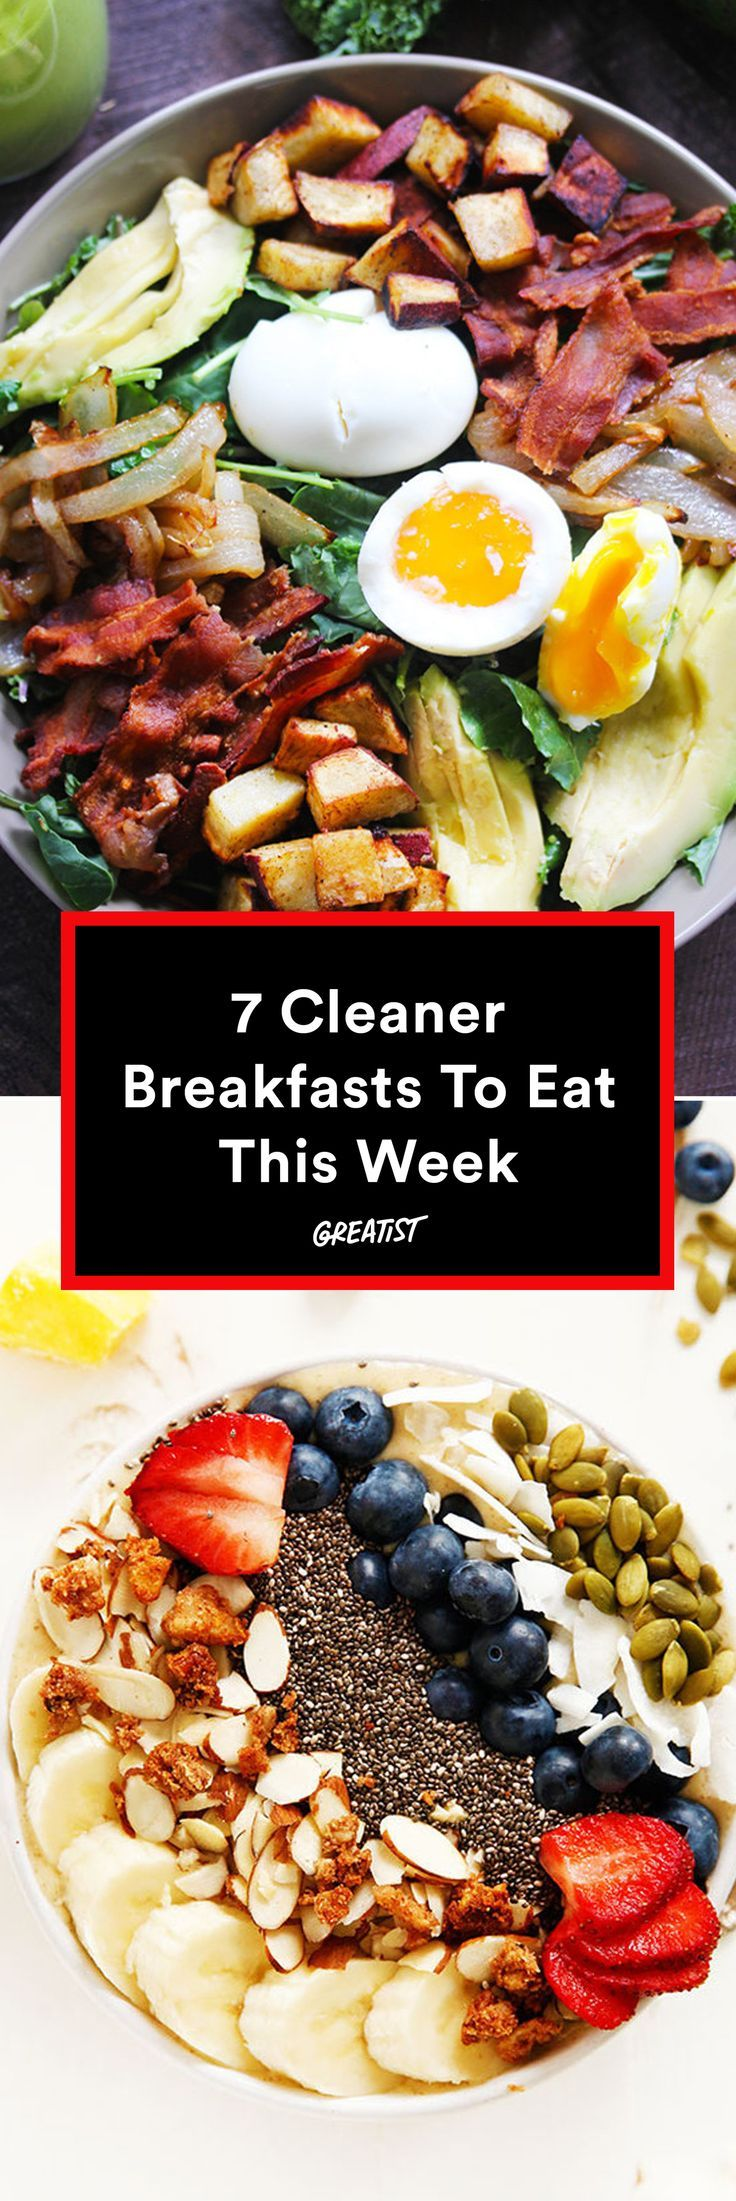 7 Clean Breakfasts to Brighten Your Morning